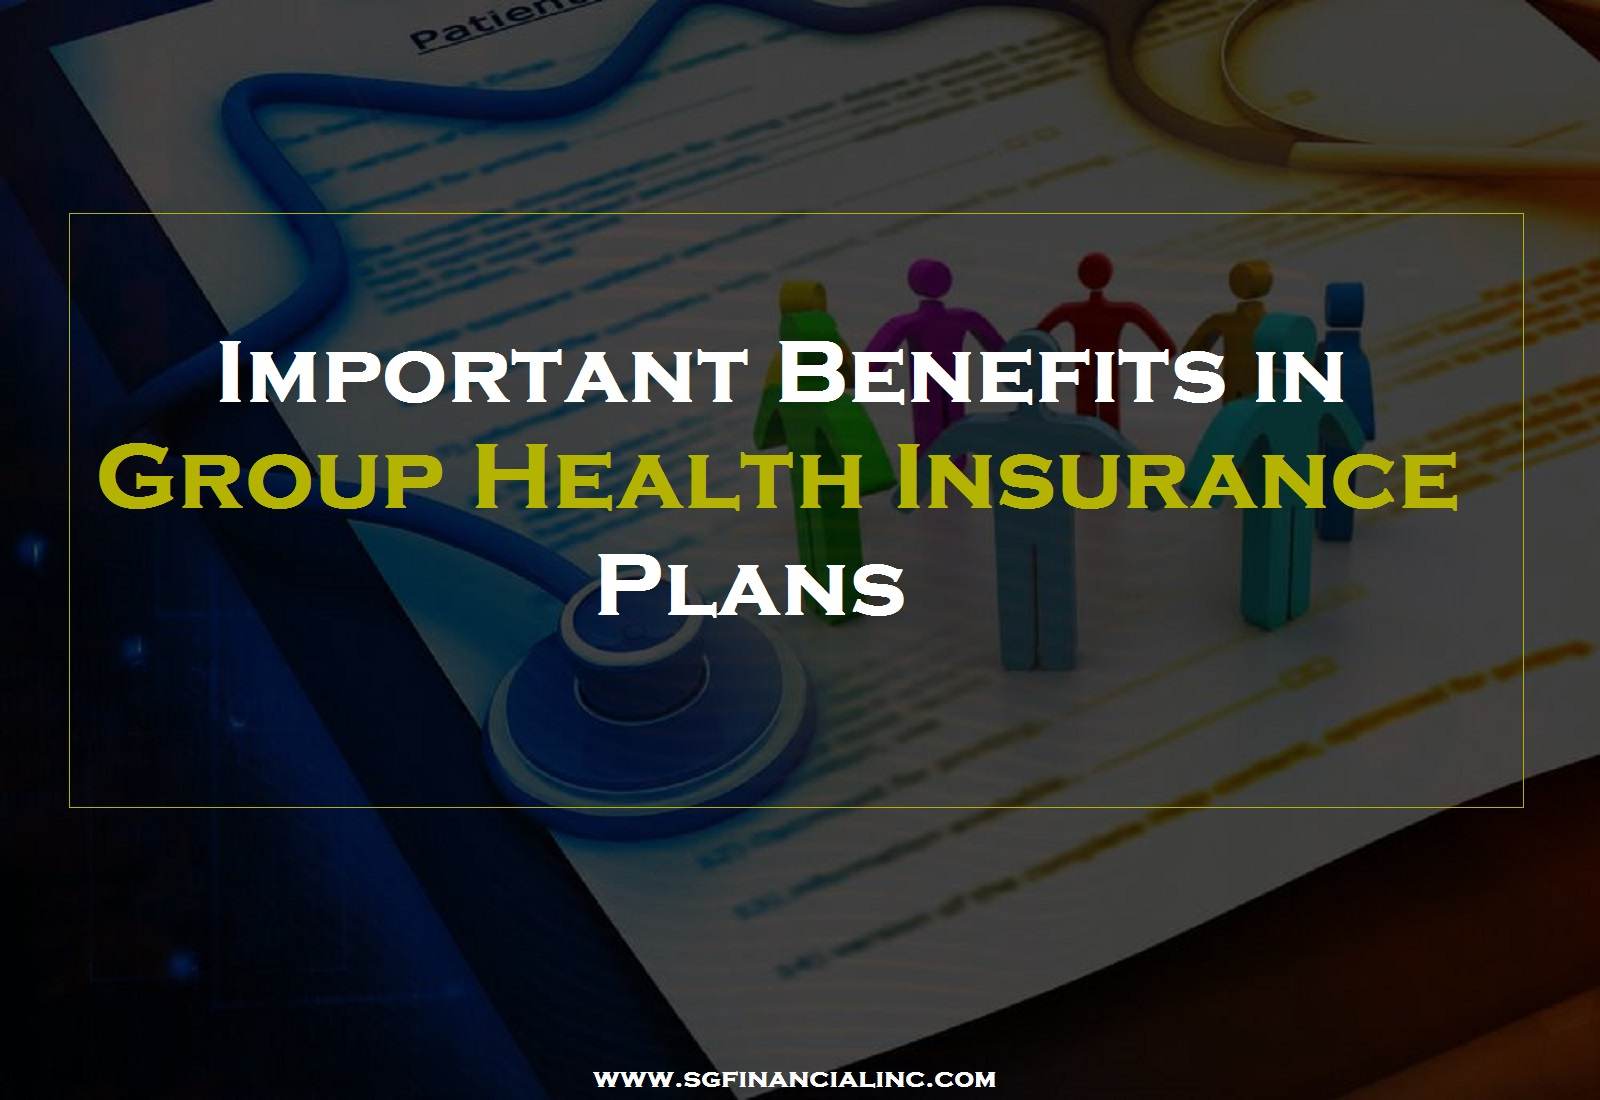 Important Benefits in Group Health Insurance Plans